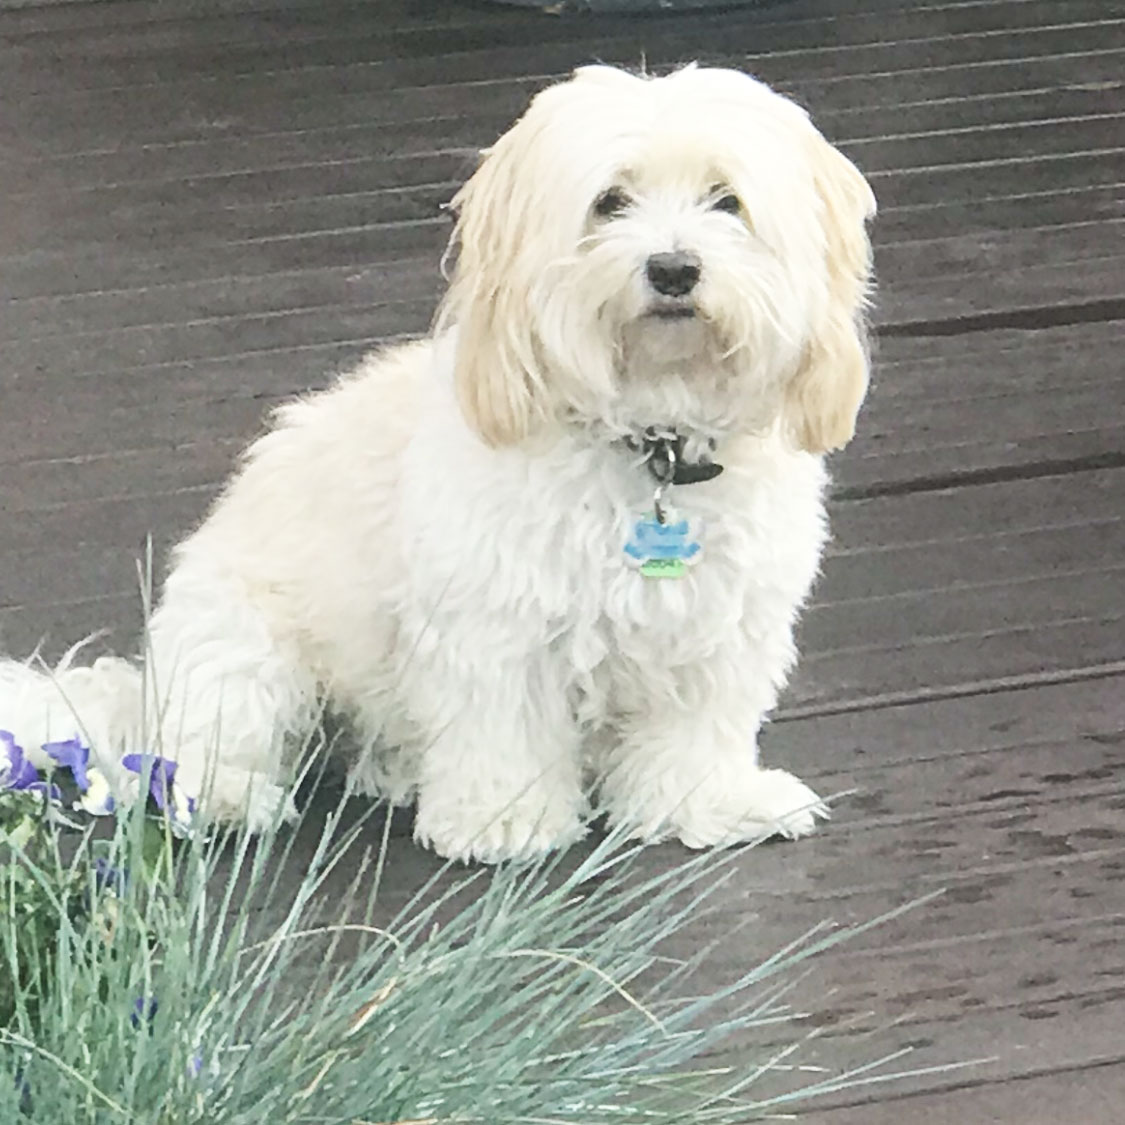 Eight-year-old poodle cross shih tzu, Teddy, was killed in the attack.